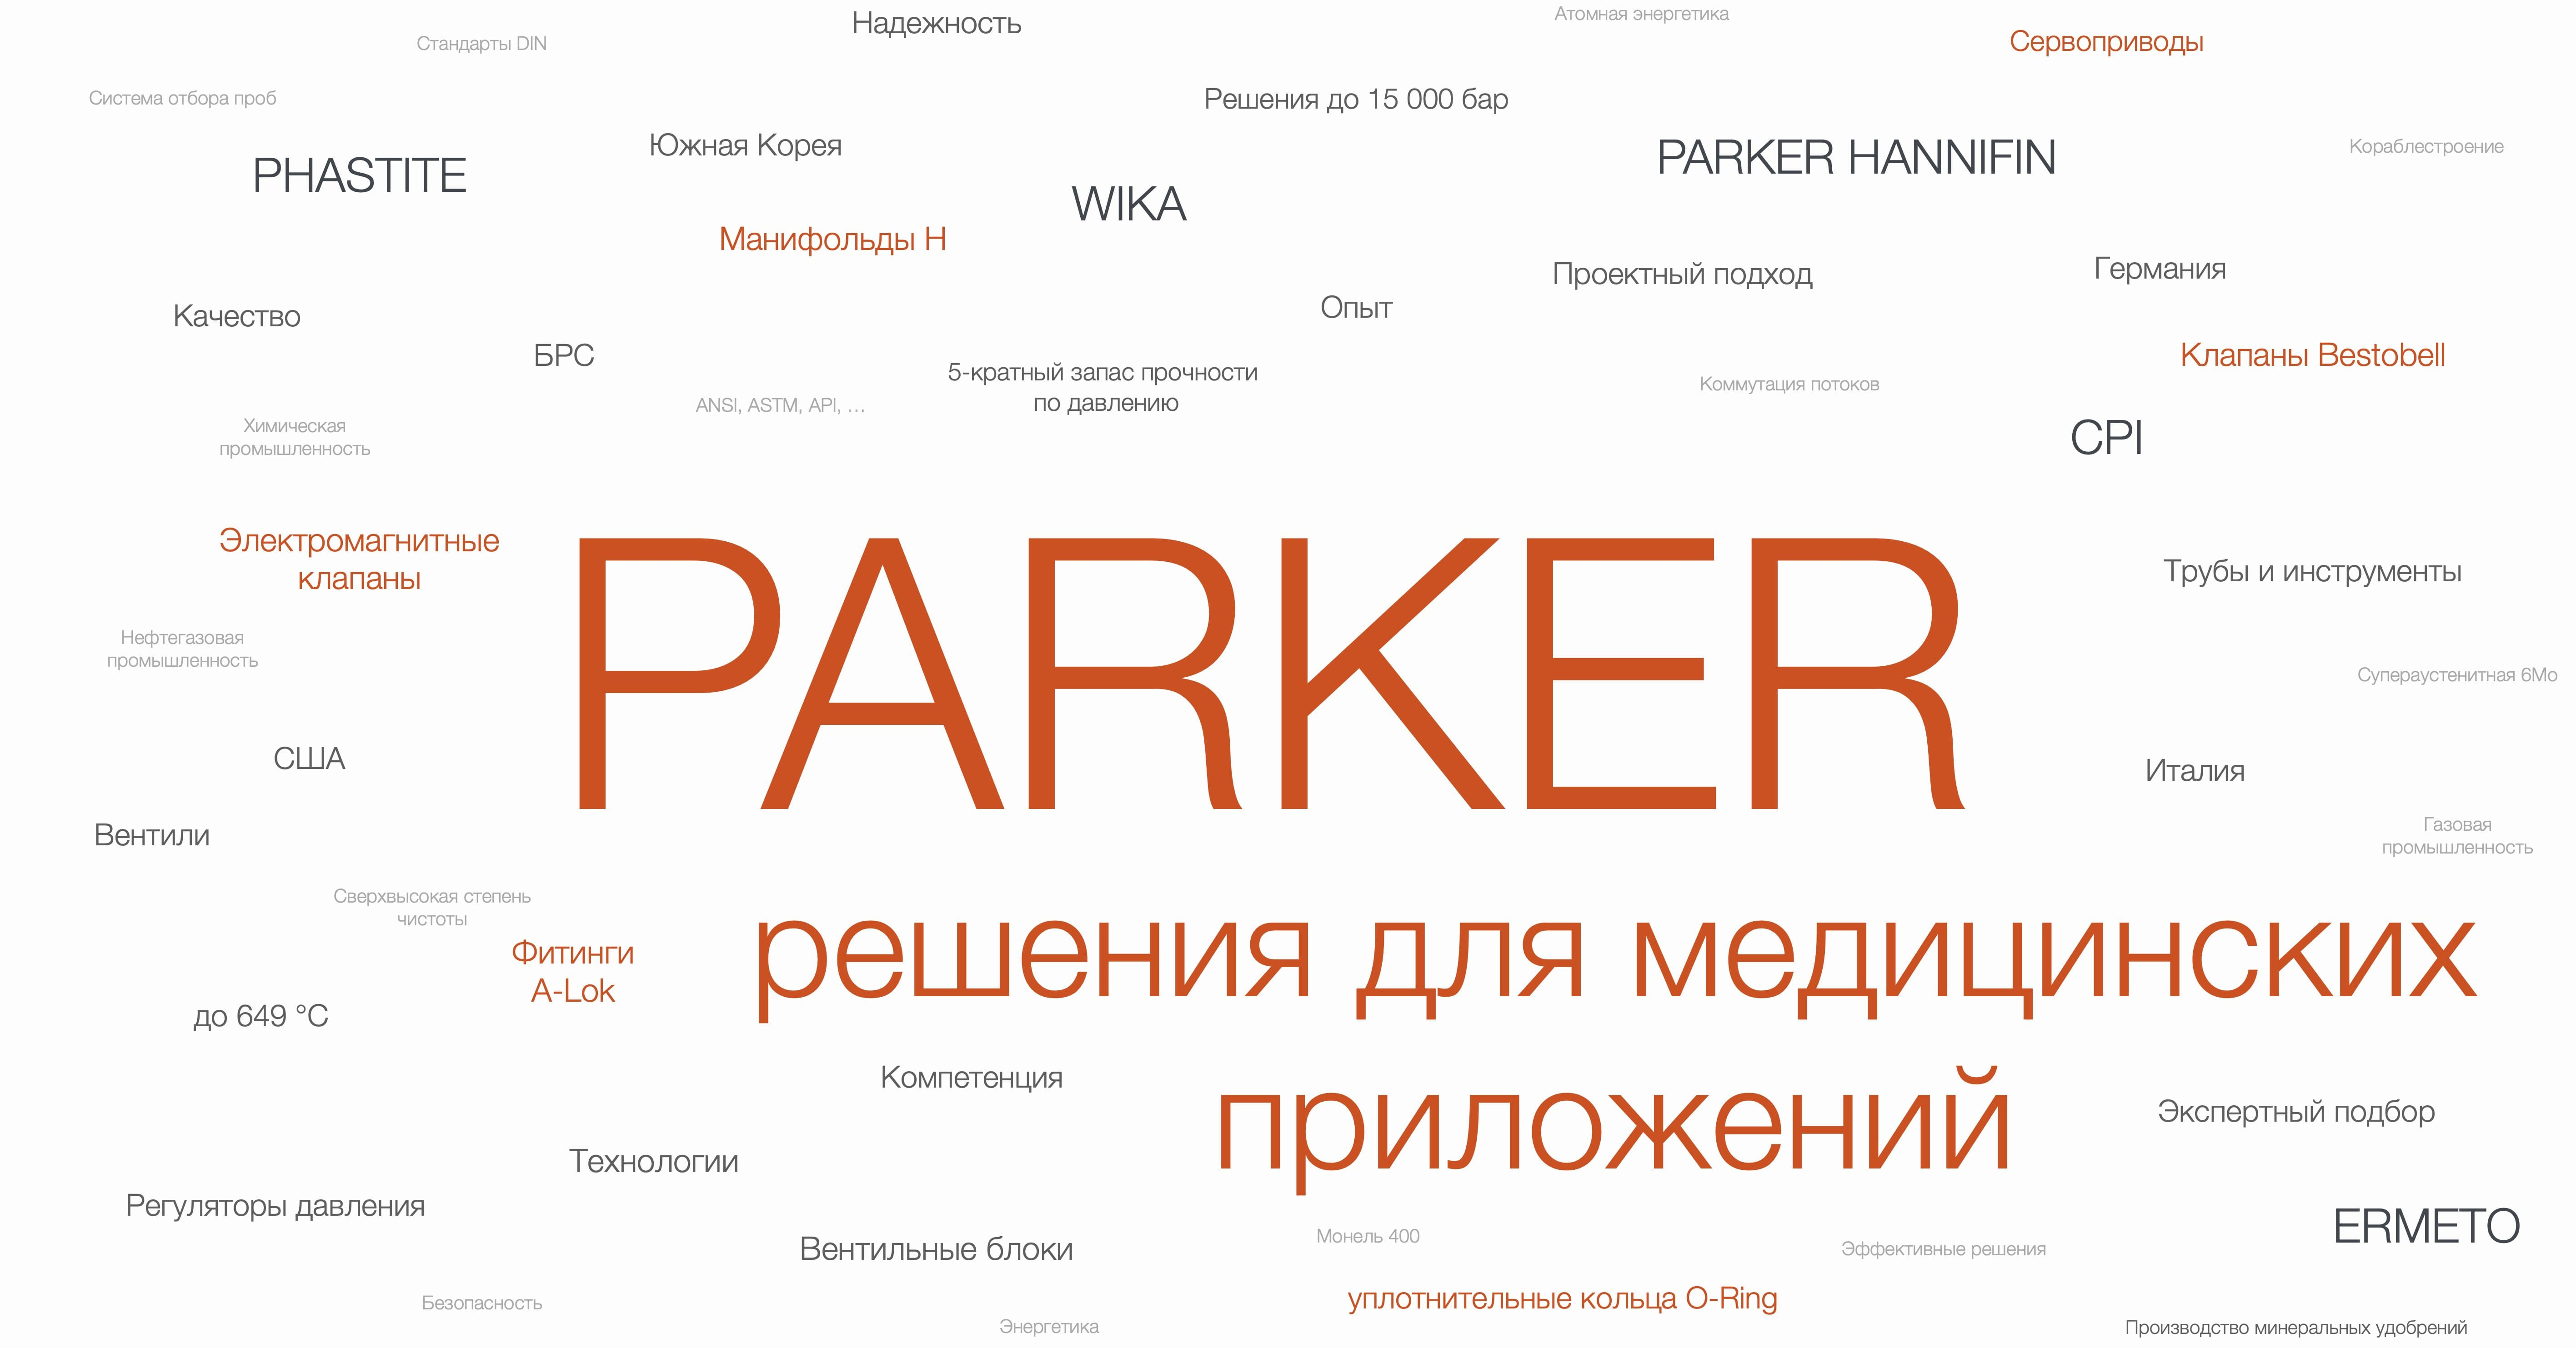 Parker_Hannifin_Medical_Applications_Solutions.jpg